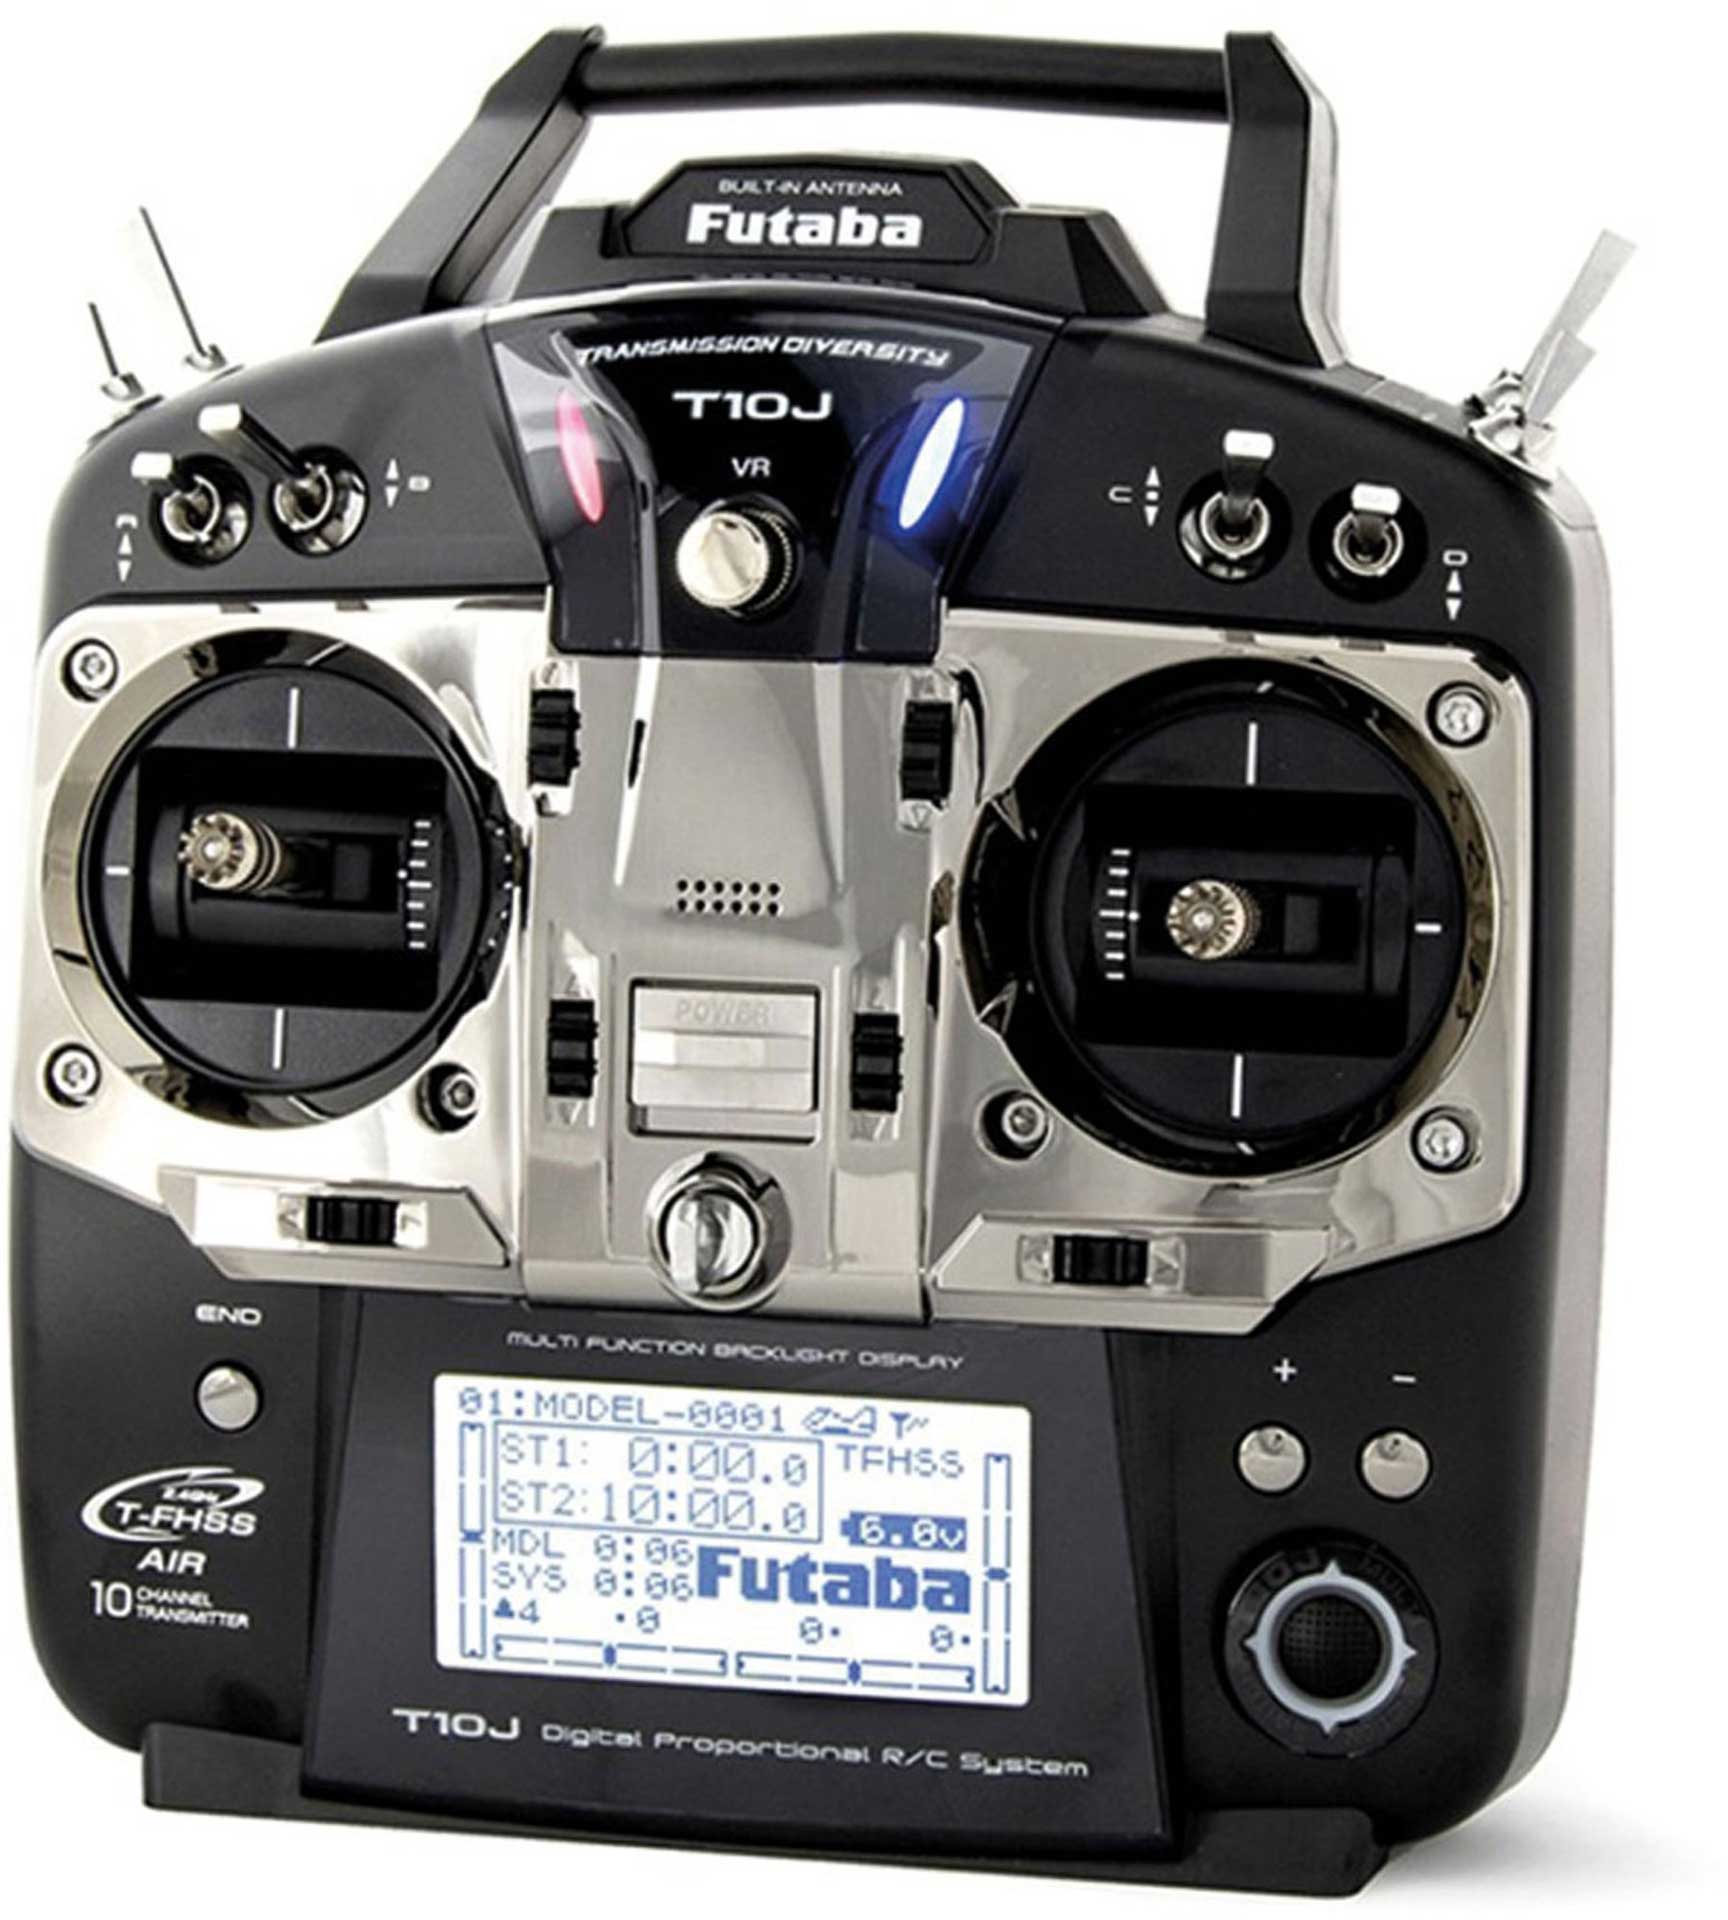 FUTABA T10J T-FHSS M1 WITH R3008SB RECEIVER REMOTE CONTROL NOT MOUNT / MOUNT COMPATI